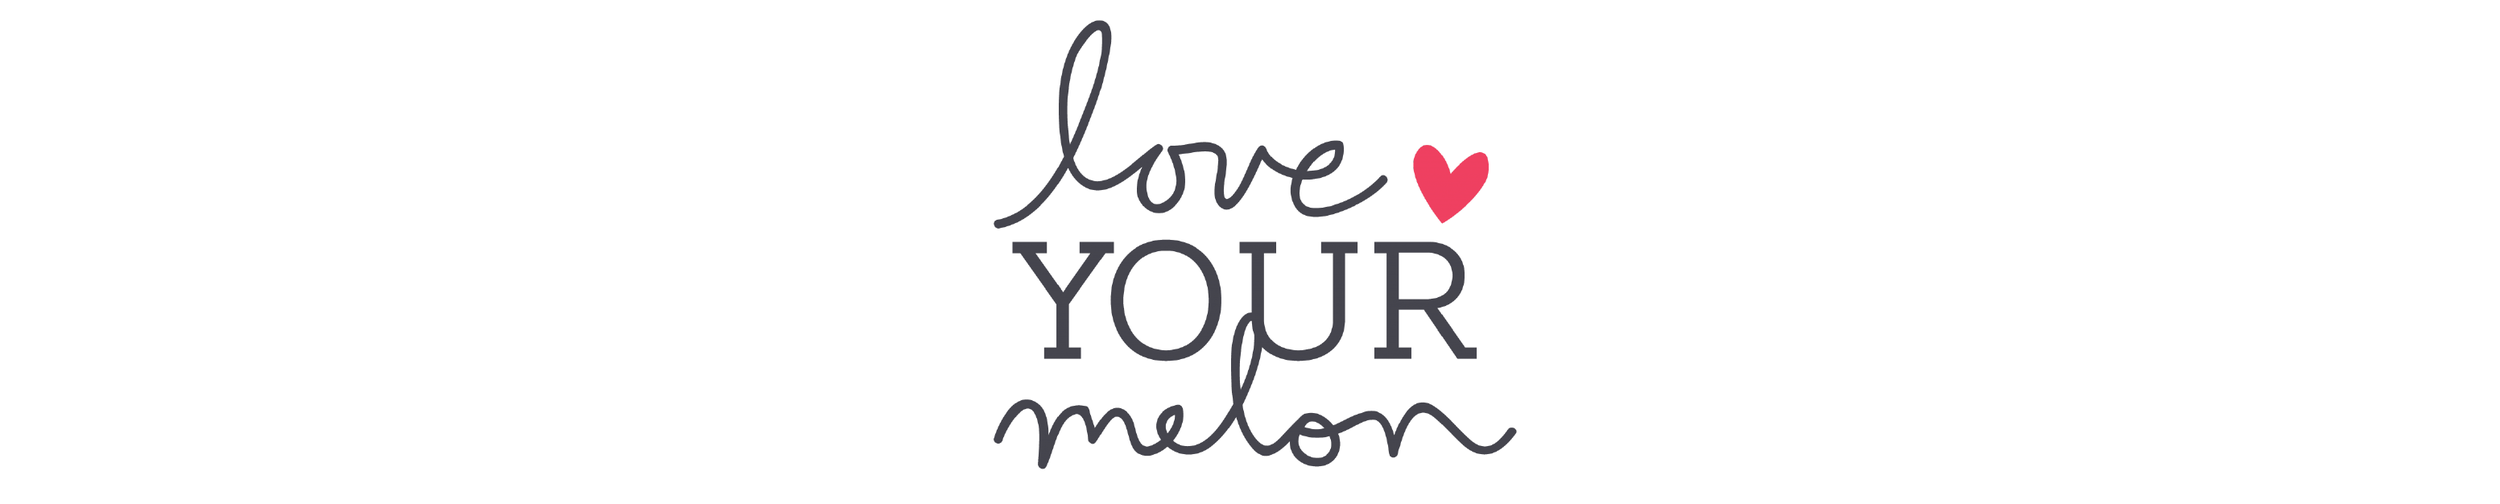 LoveMelon-01.png